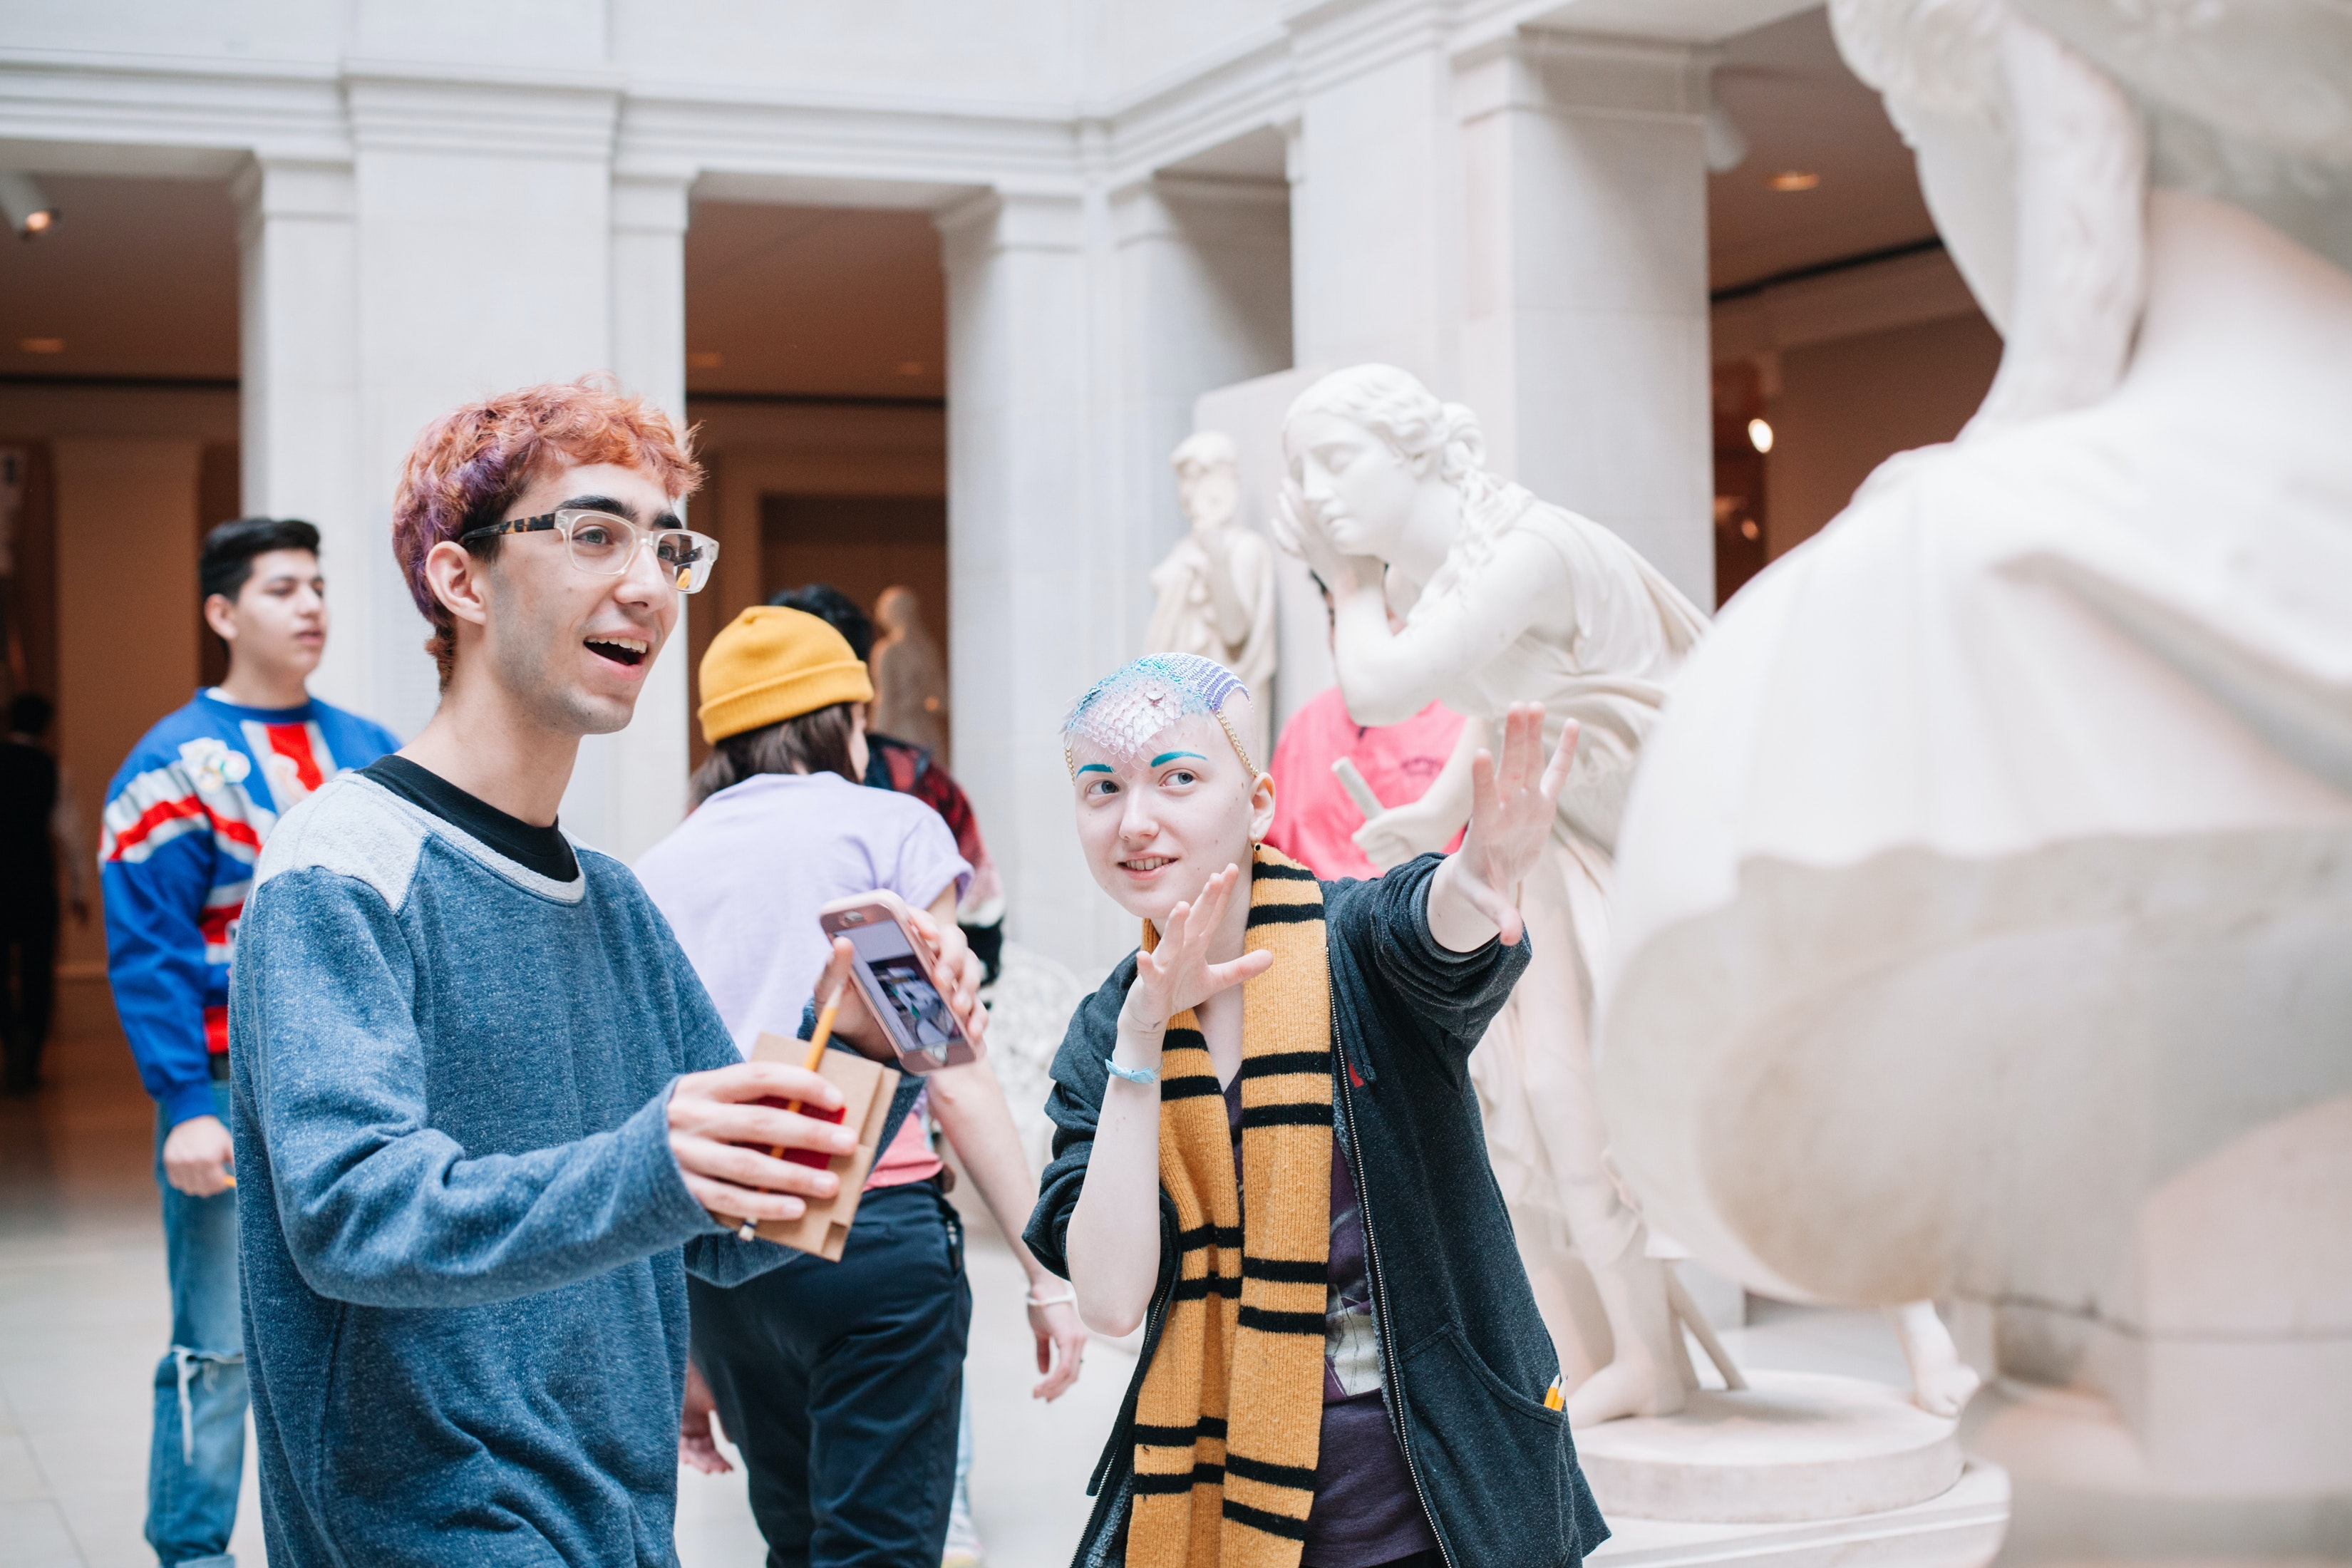 Two teens have a spirited conversation in the American sculpture gallery.